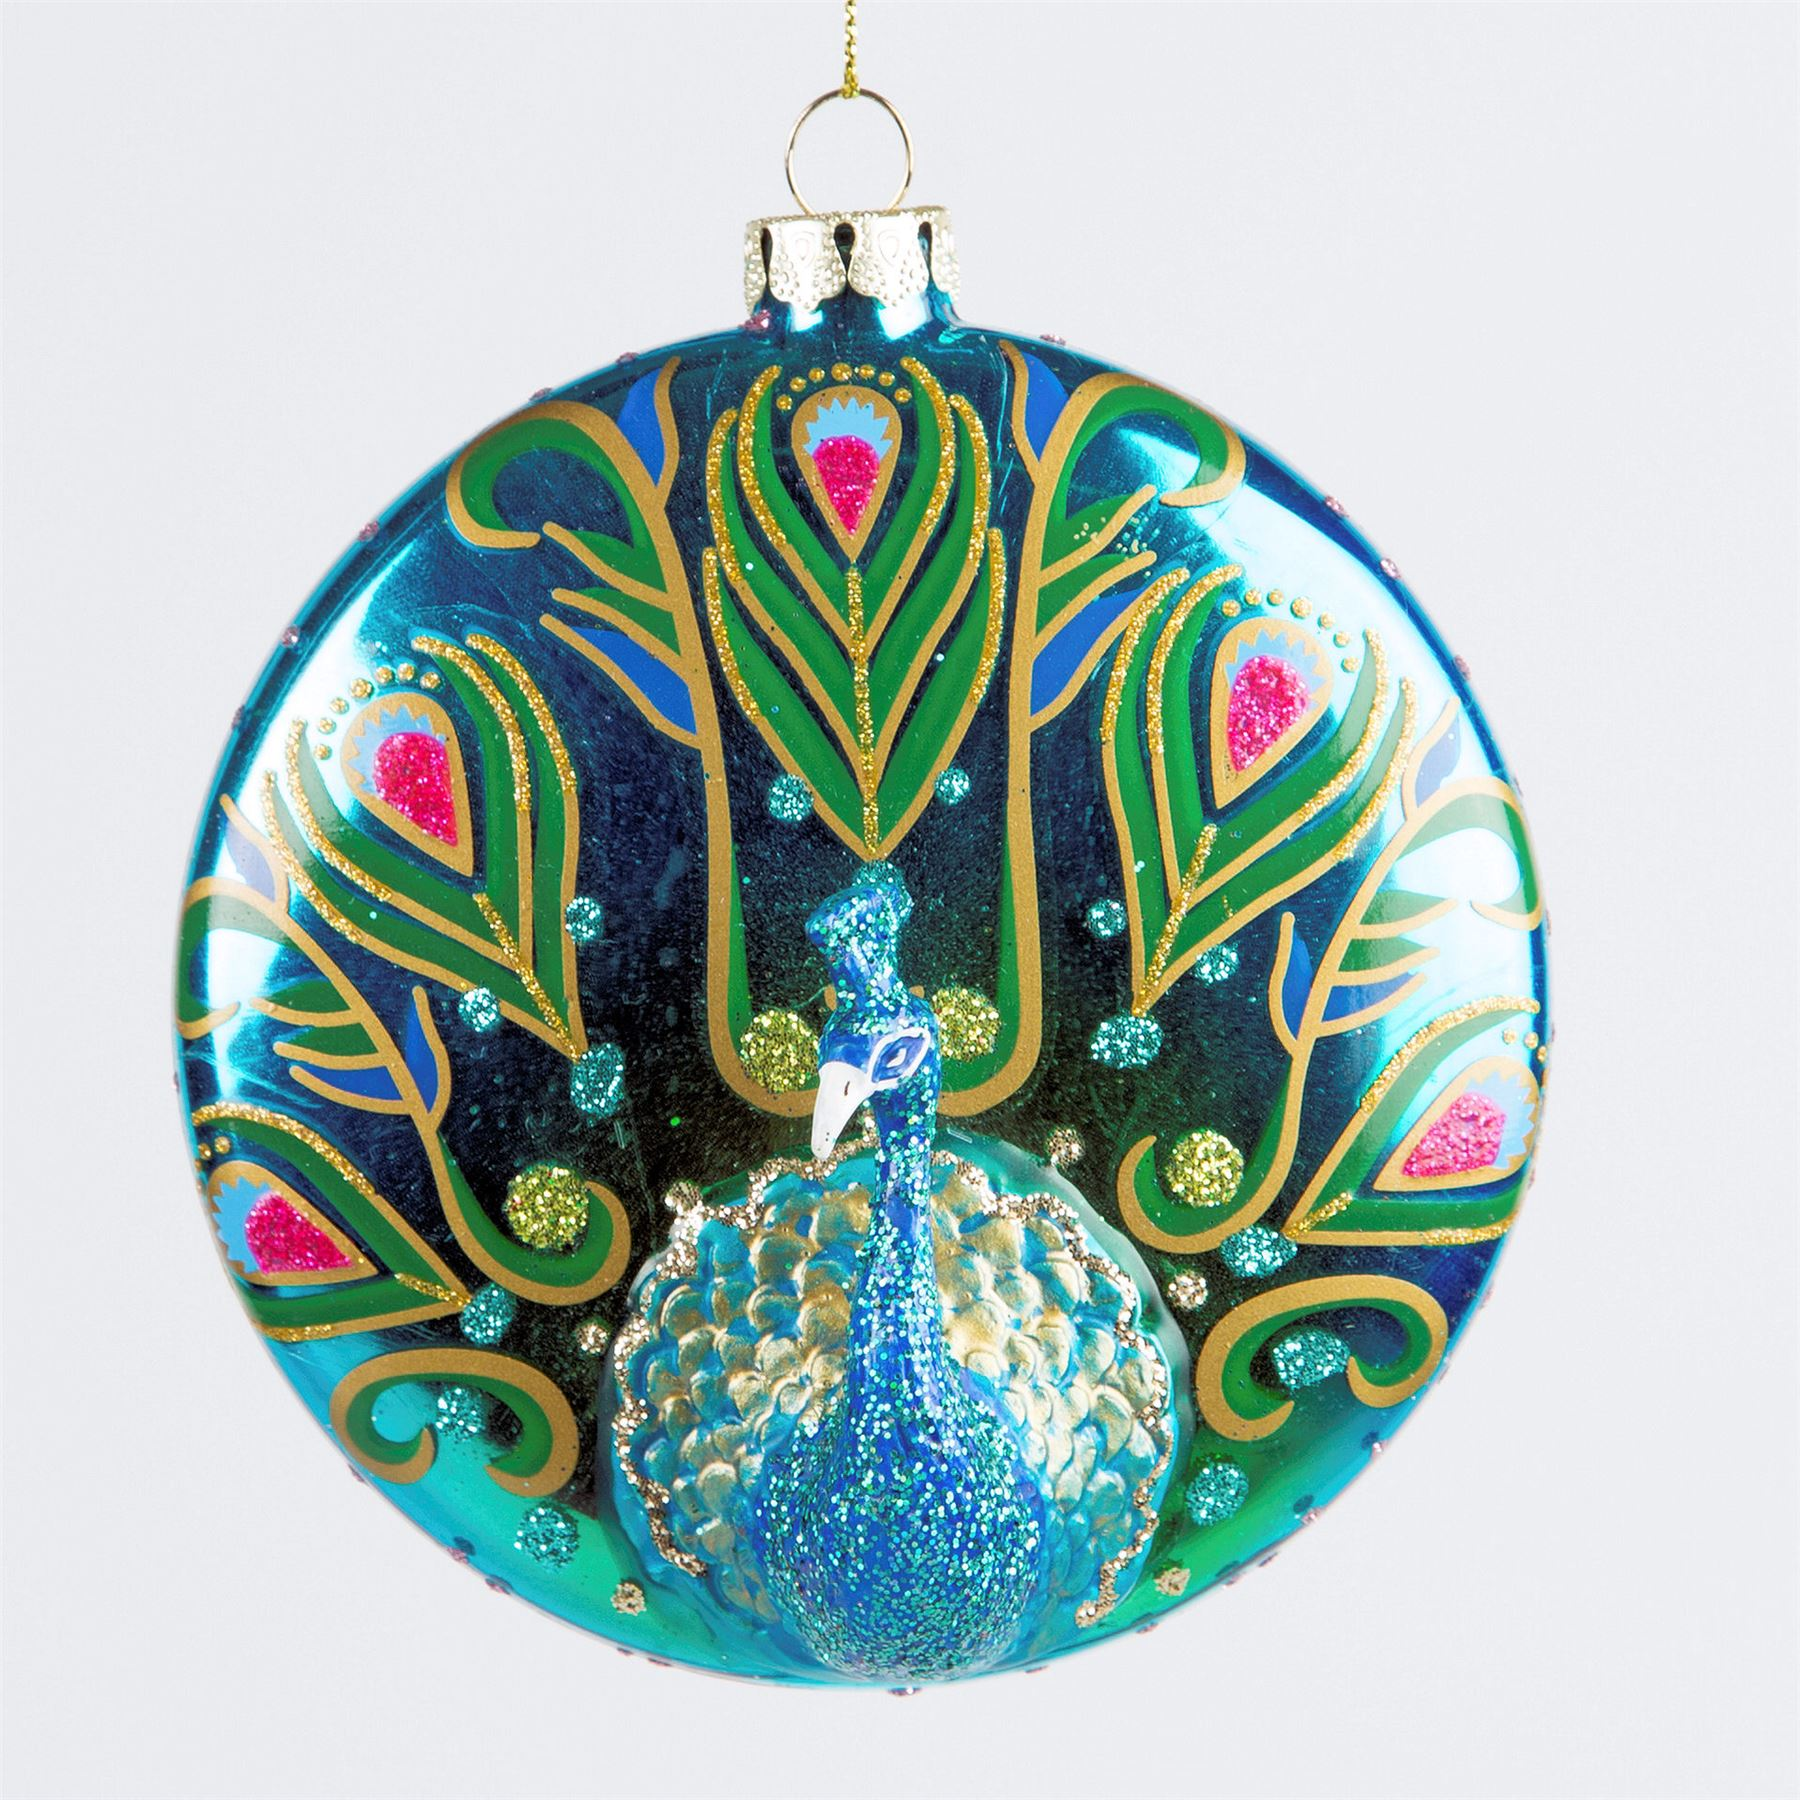 Luxury Glass Birds Christmas Hanging Tree Decorations